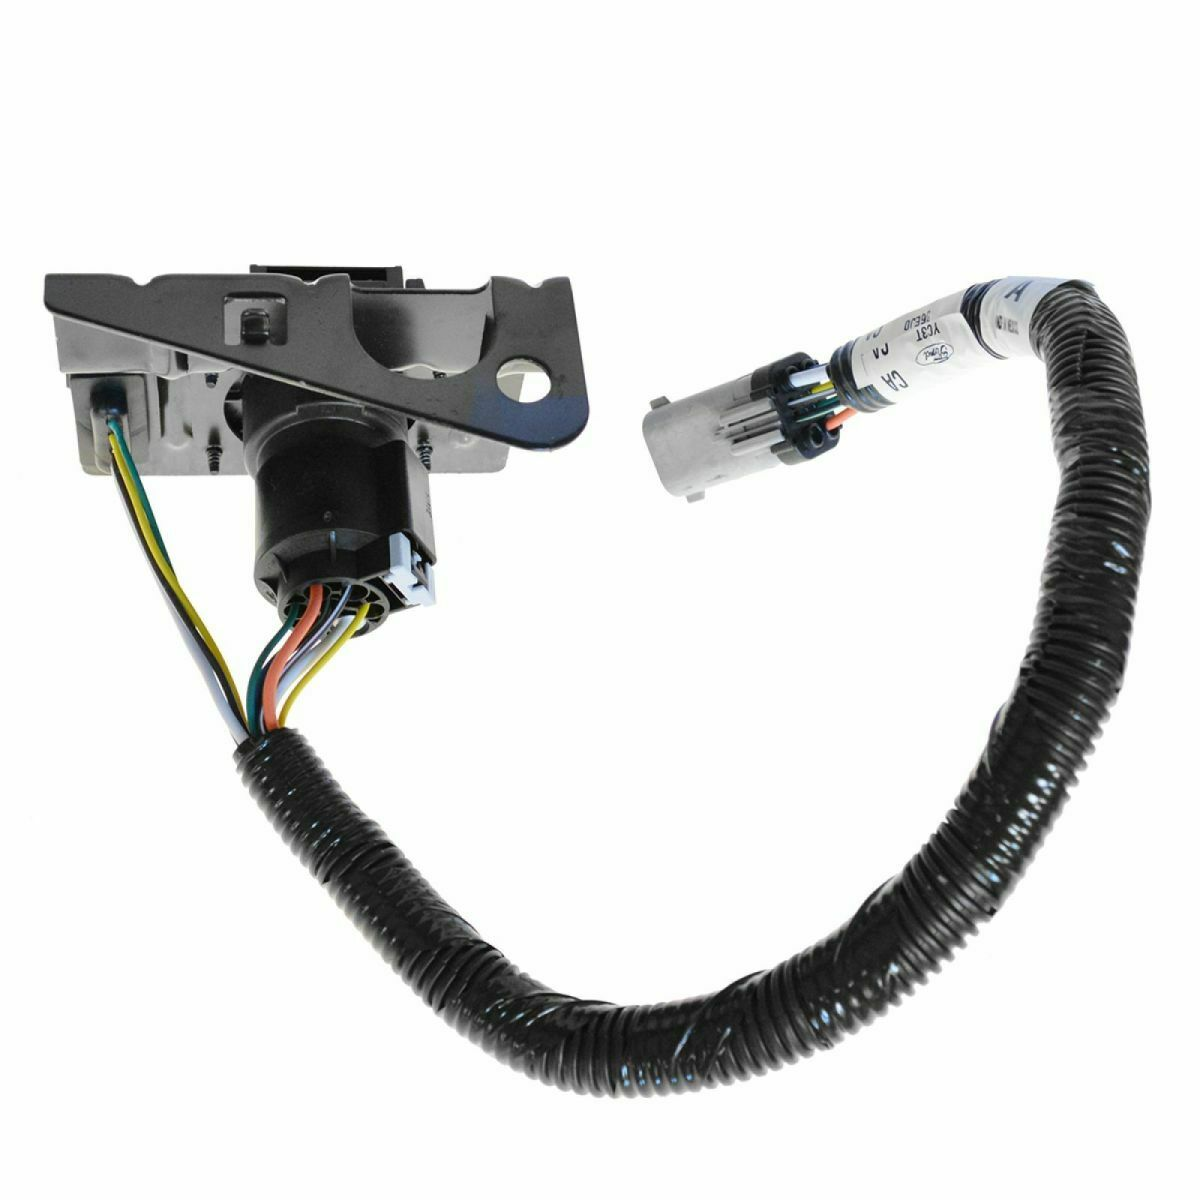 Ford F350 Trailer Wiring Harness 2003 F 250 4 7 Pin Tow W Plug Bracket For F250 Rh Picclick Com 1997